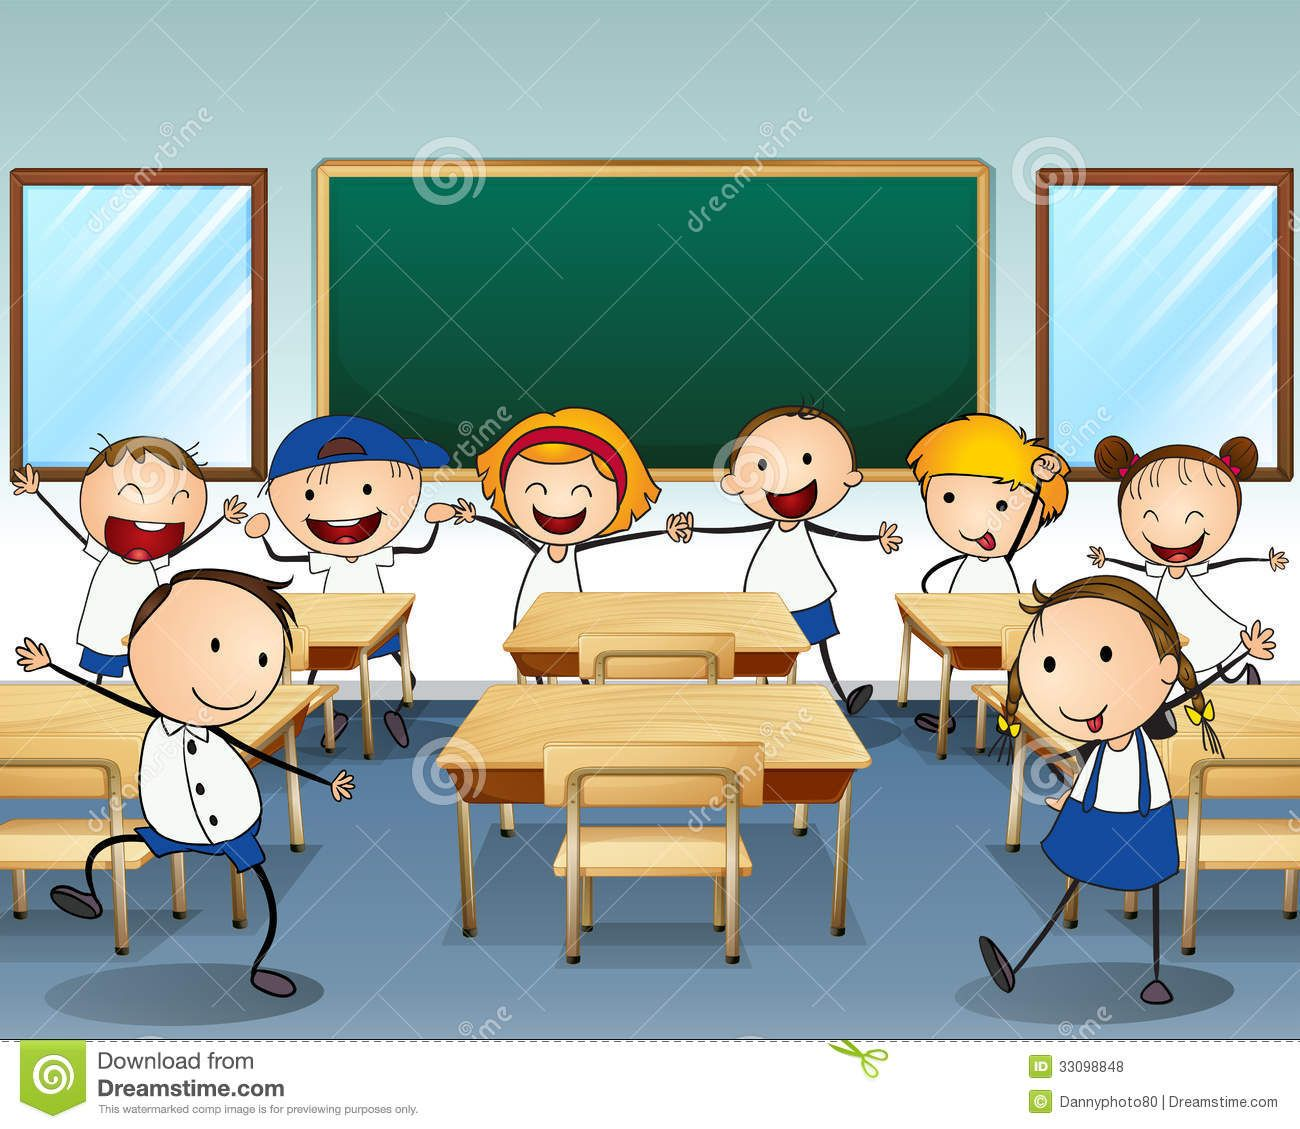 Fun classroom clipart jpg freeuse stock Pin by Michele Raasch on F1 | Classroom clipart, Classroom ... jpg freeuse stock